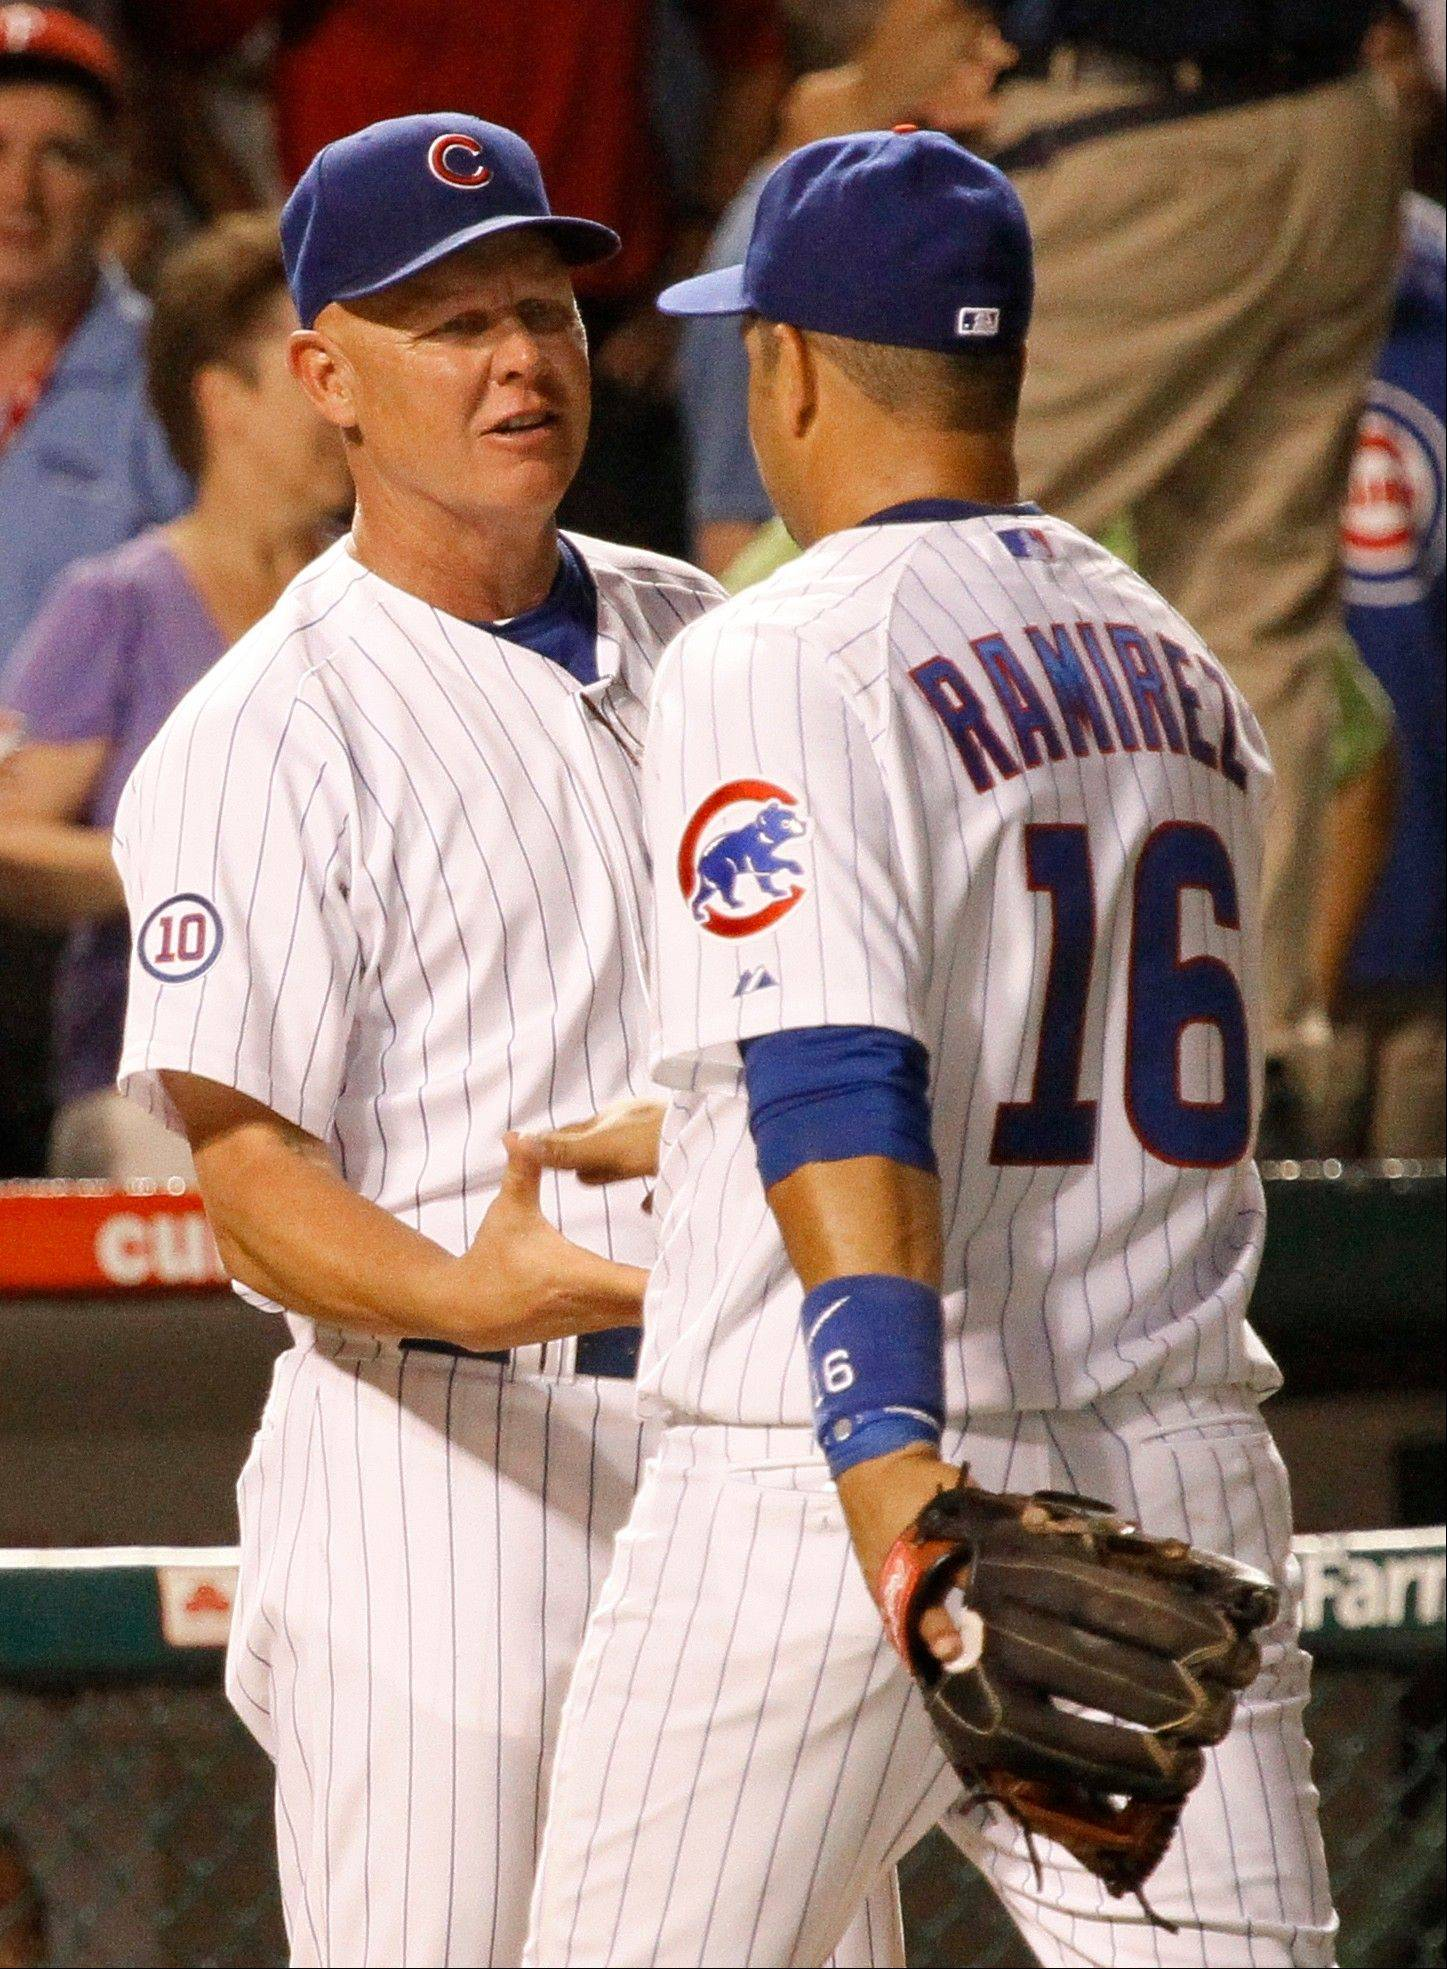 "Cubs manager Mike Quade, here celebrating a win over the Phillies last week with third baseman Aramis Ramirez, calls his job a ""tough dream job"". And while it hasn't been fun a times, he looks forward to going to work and solving the problems."